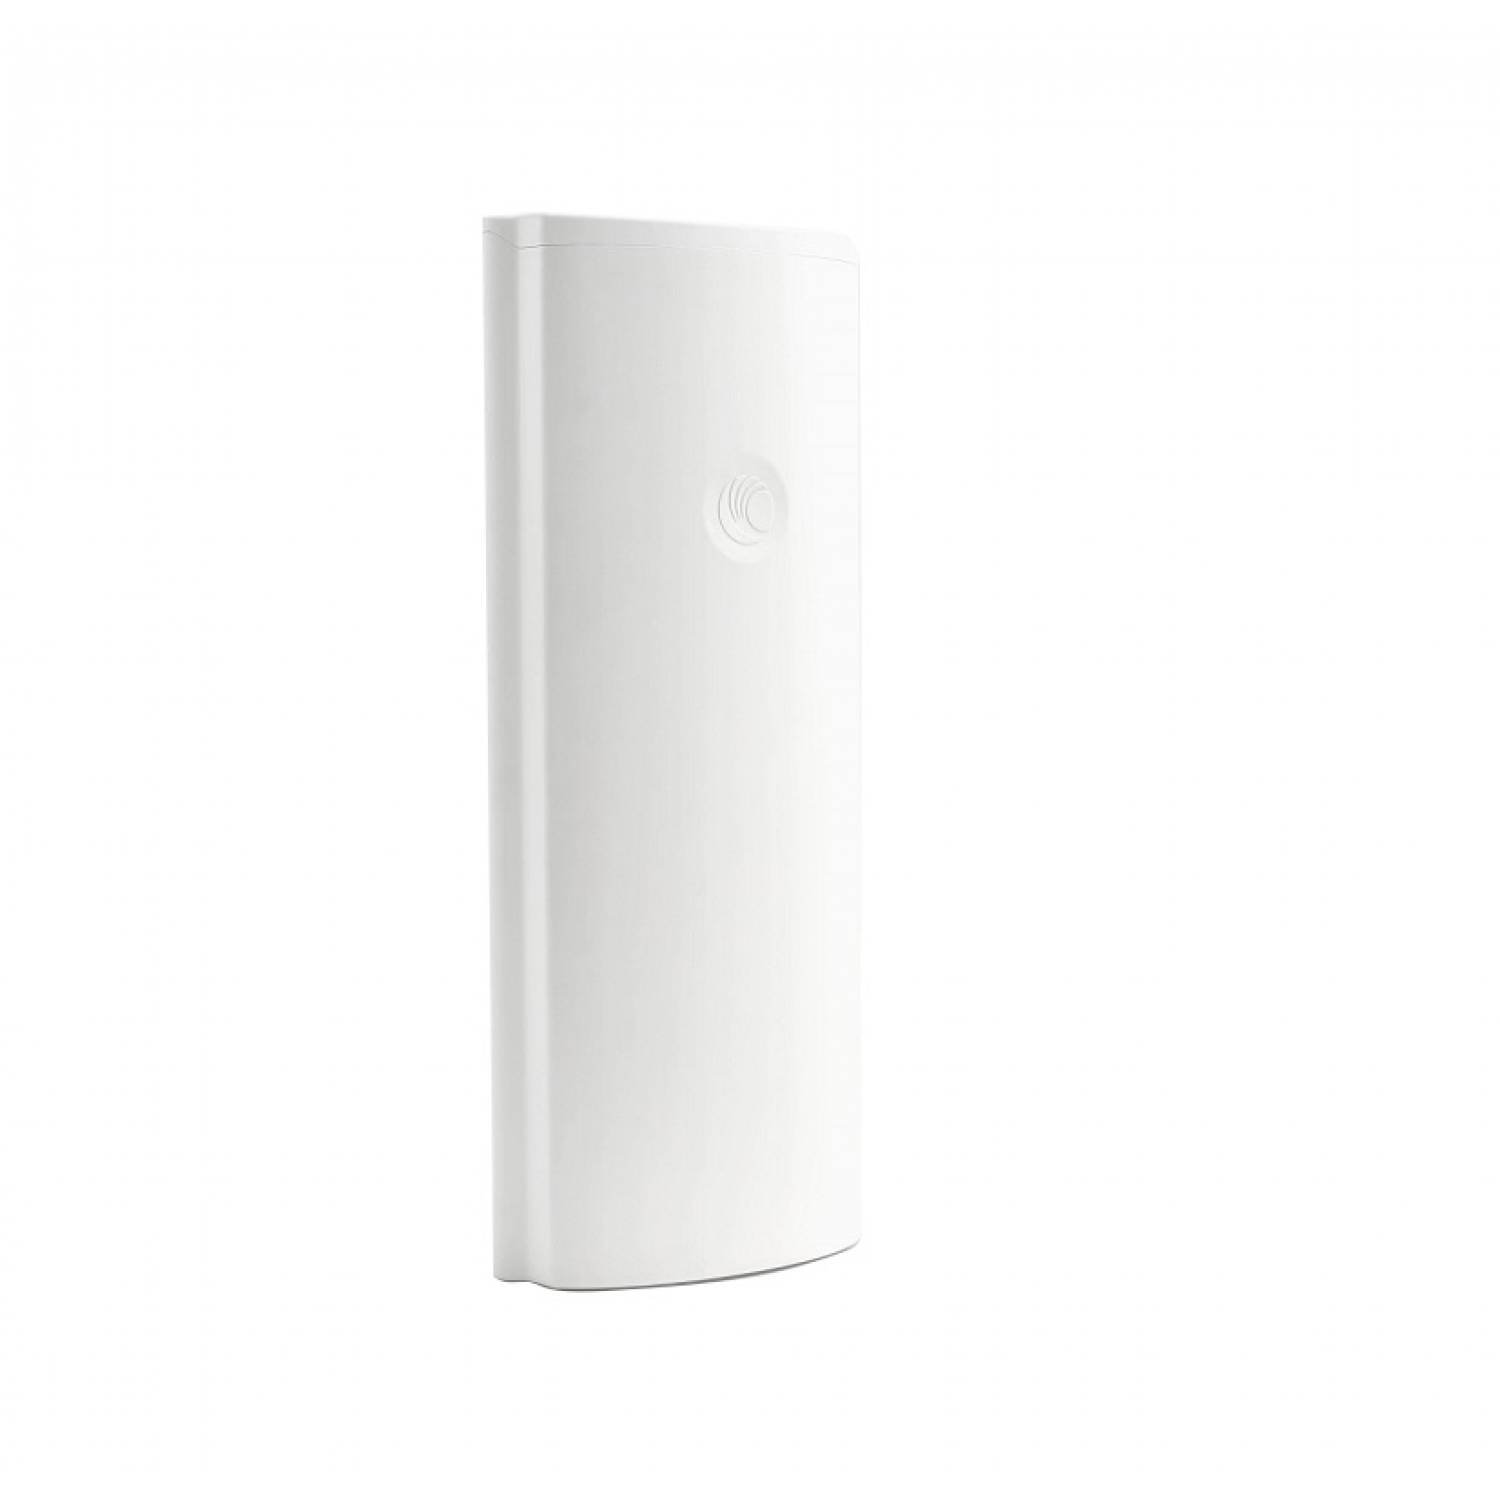 Cambium Networks ePMP 3000 4x4 MU-MIMO Sector Antenna